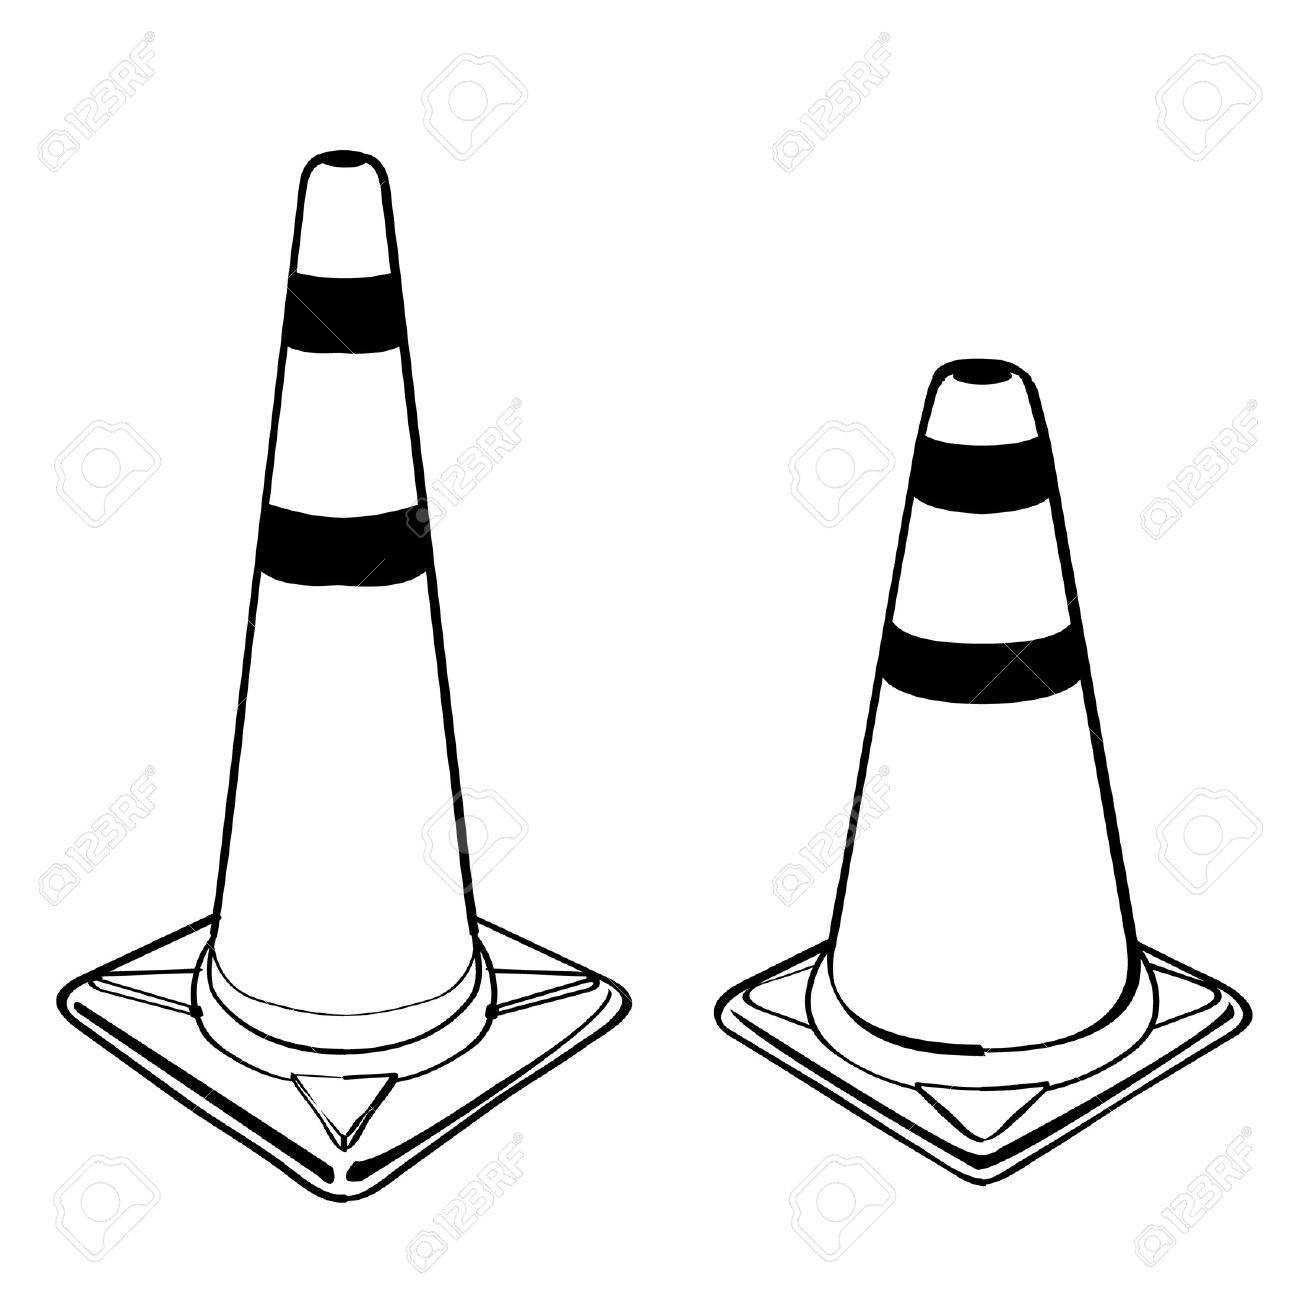 traffic cone Stock Vector - 19279779